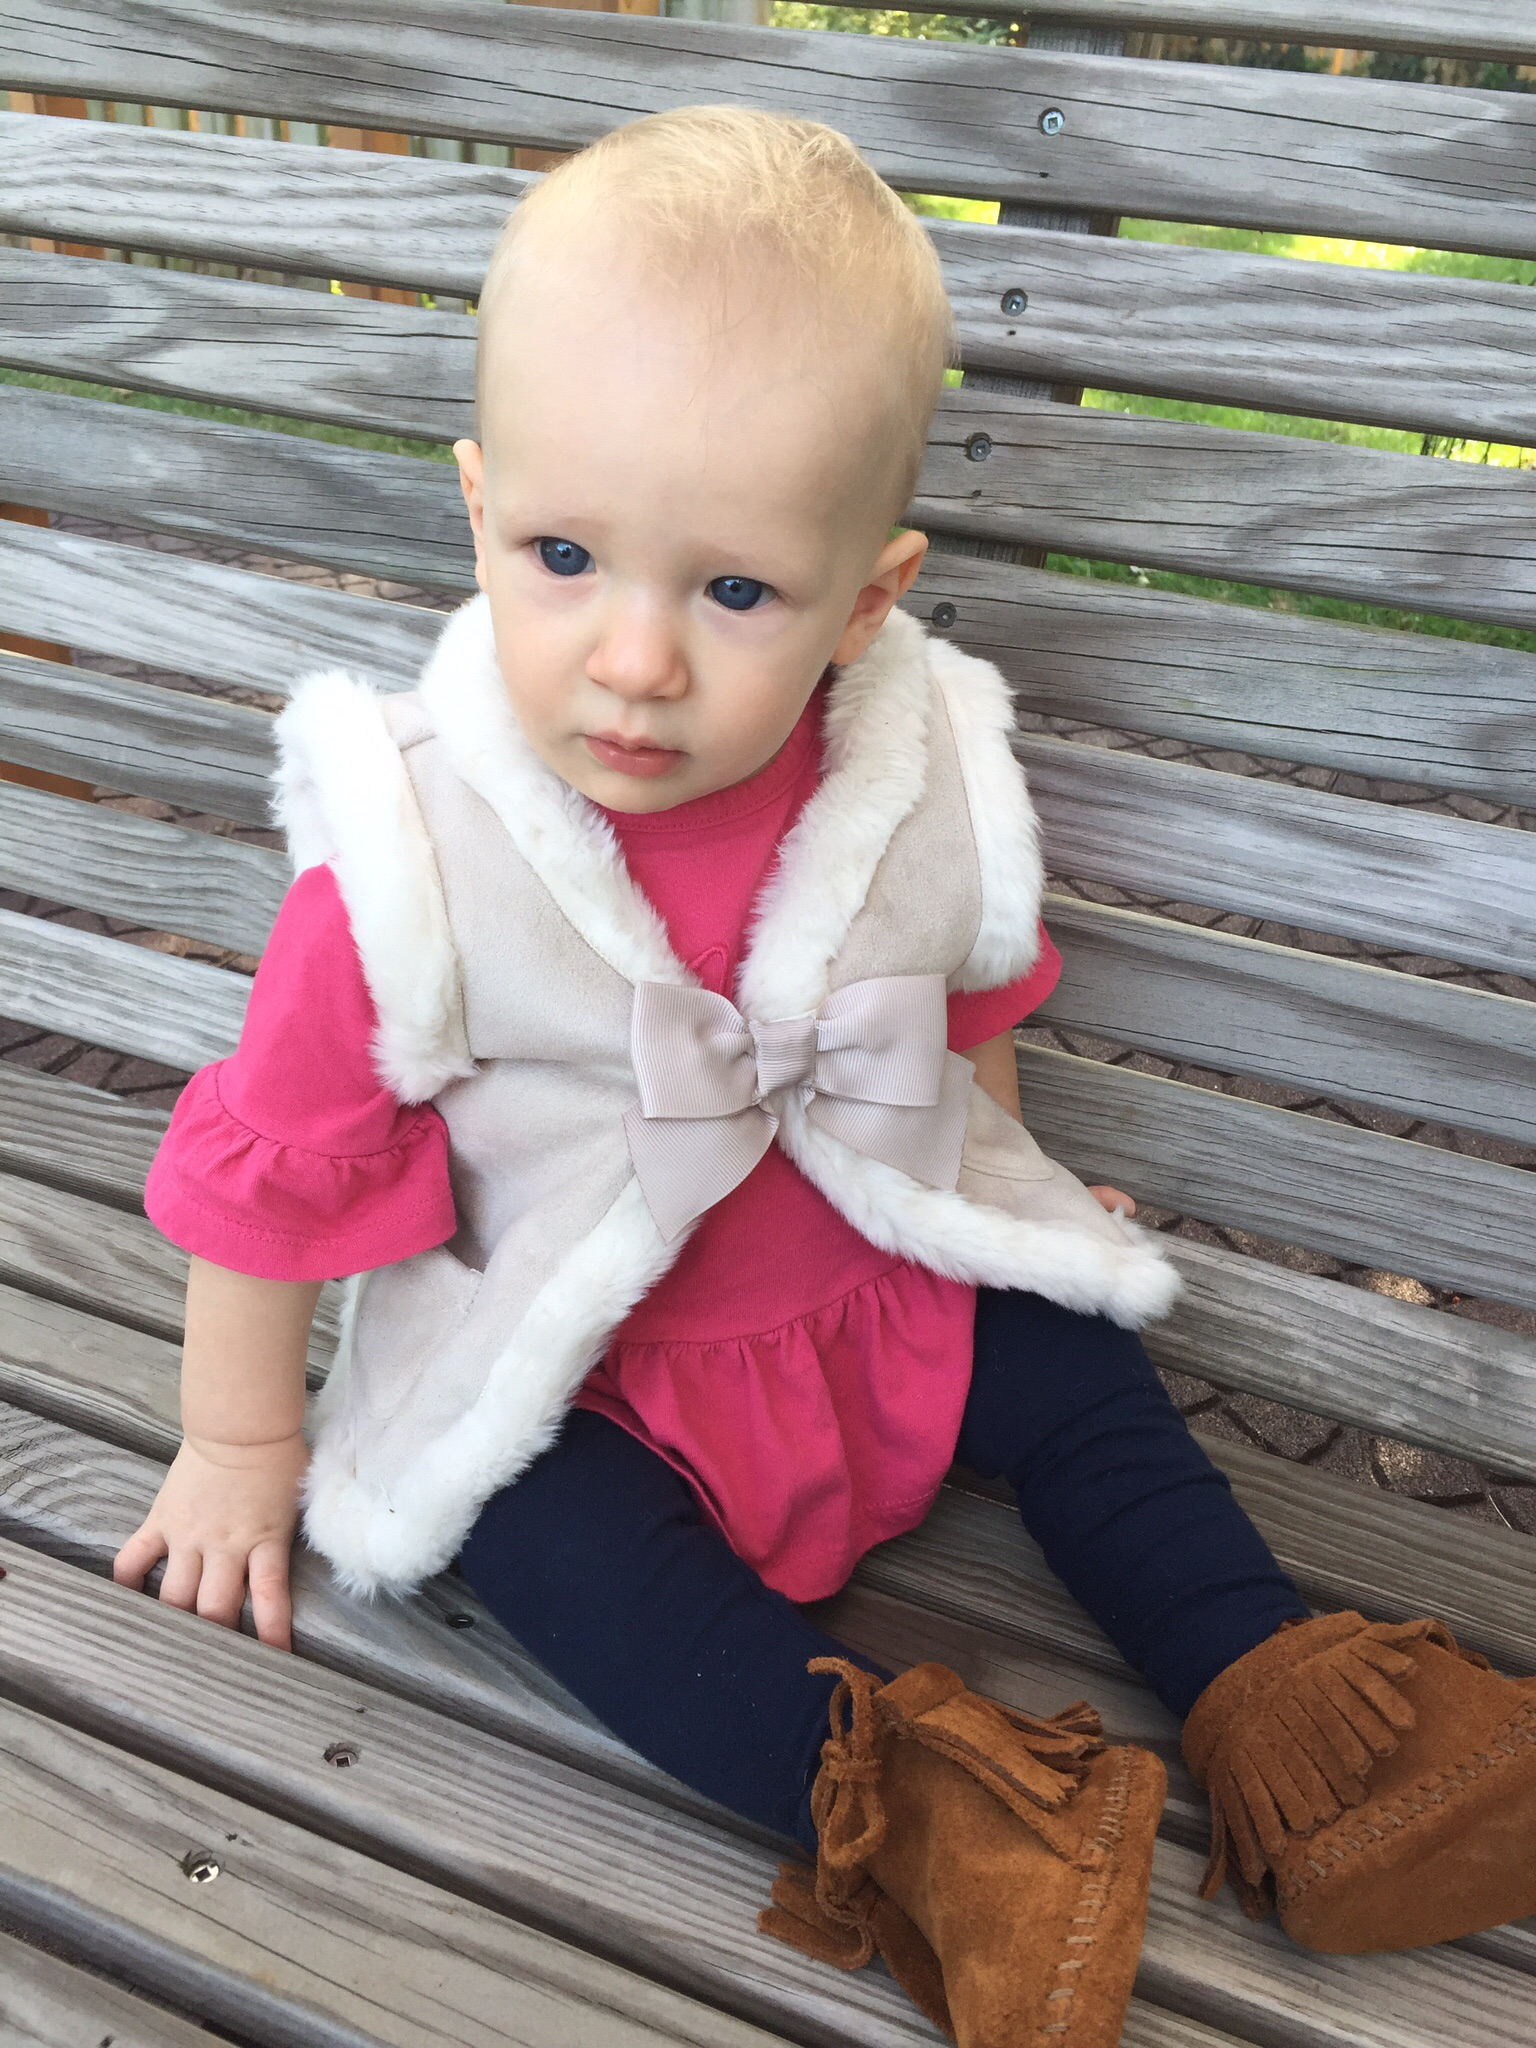 Nora fall pink outfit